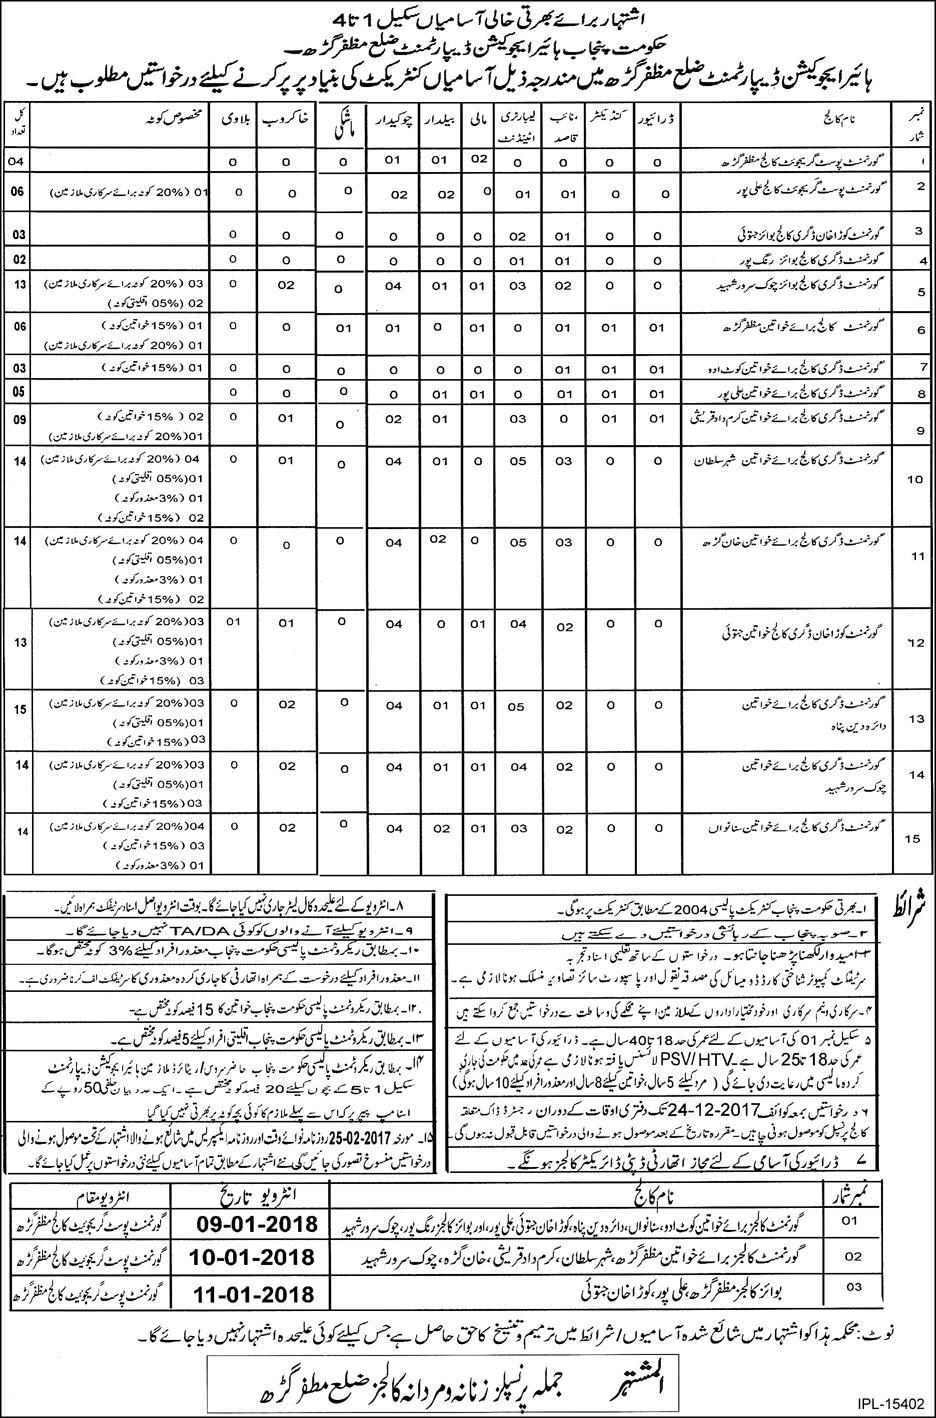 Higher Education Department Muzaffargarh jobs 23 Nov 2017